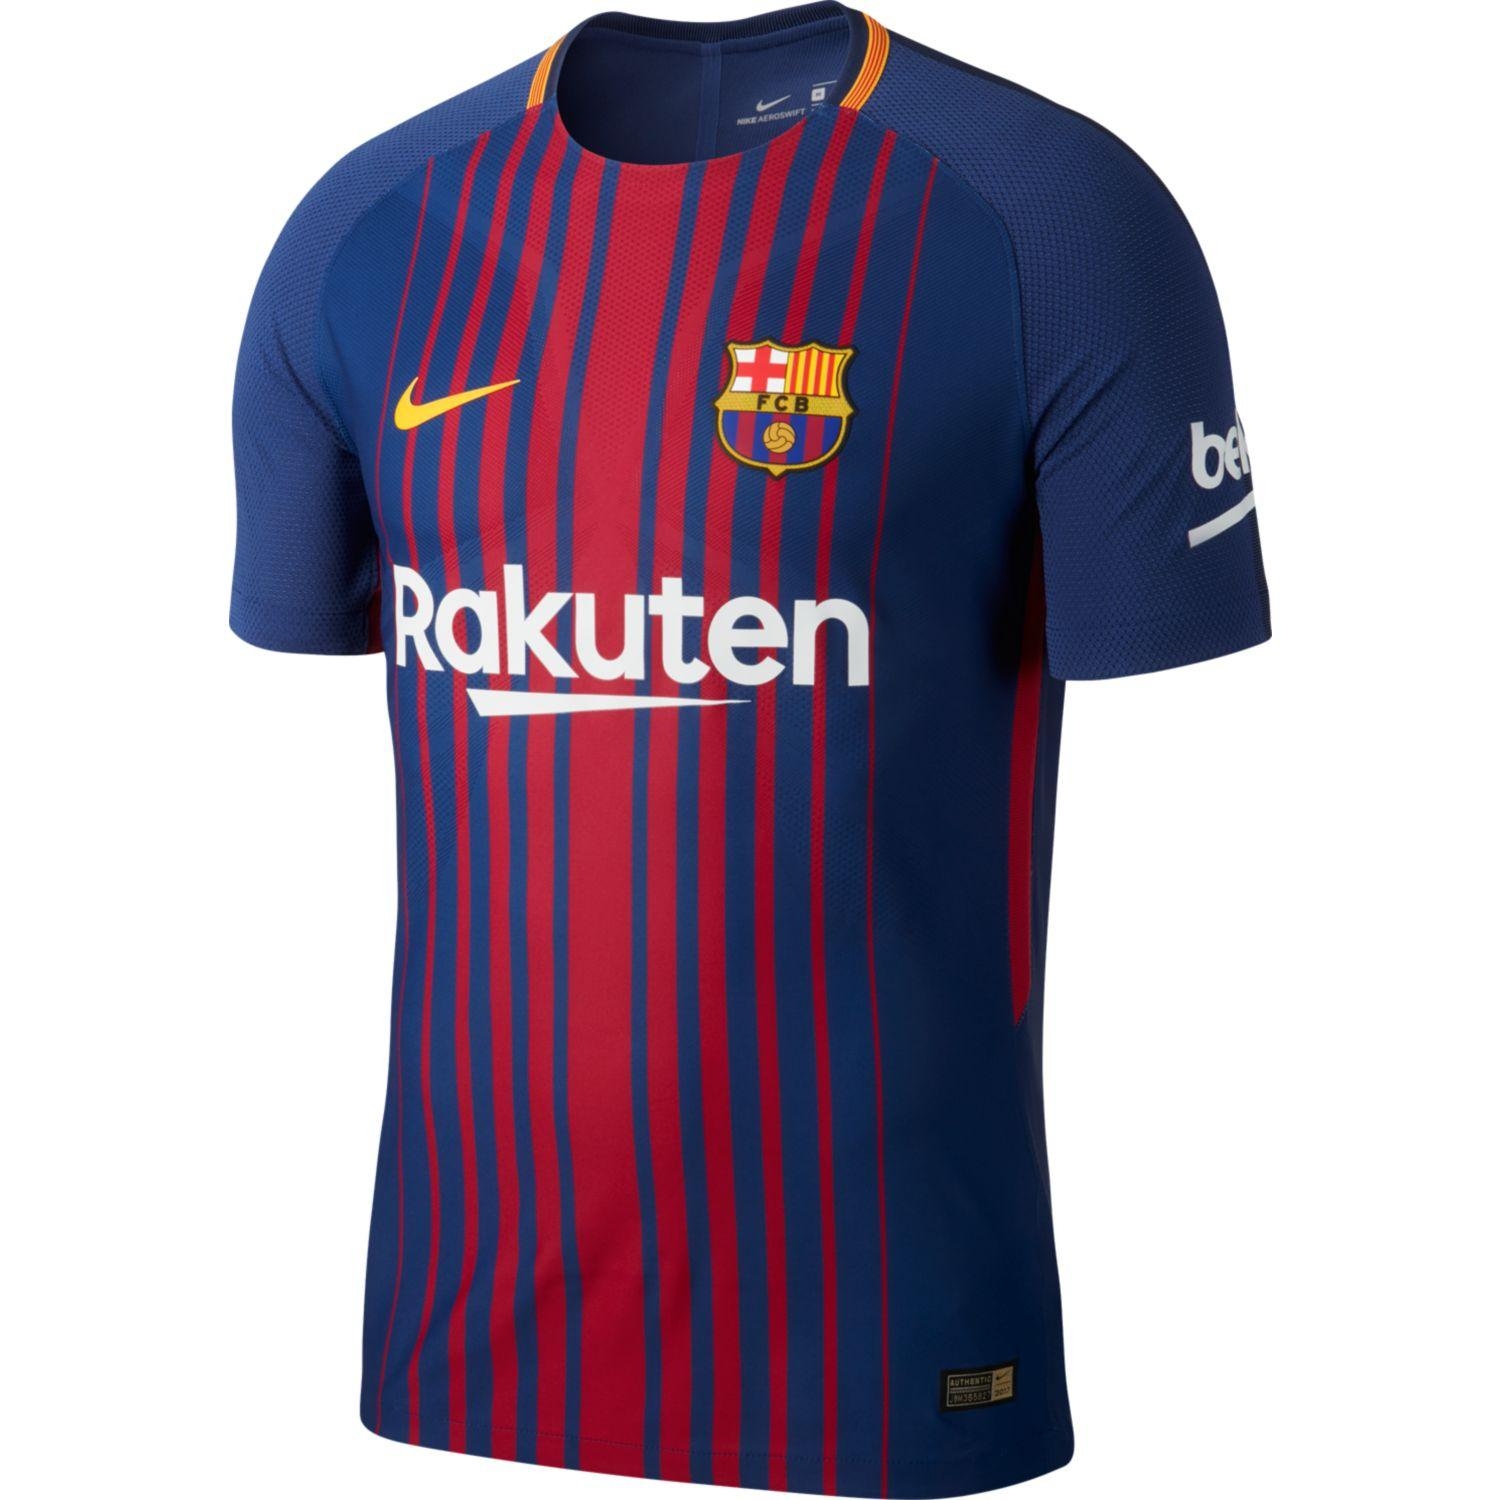 Nike Authentic Jersey Home Barcelona   17/18